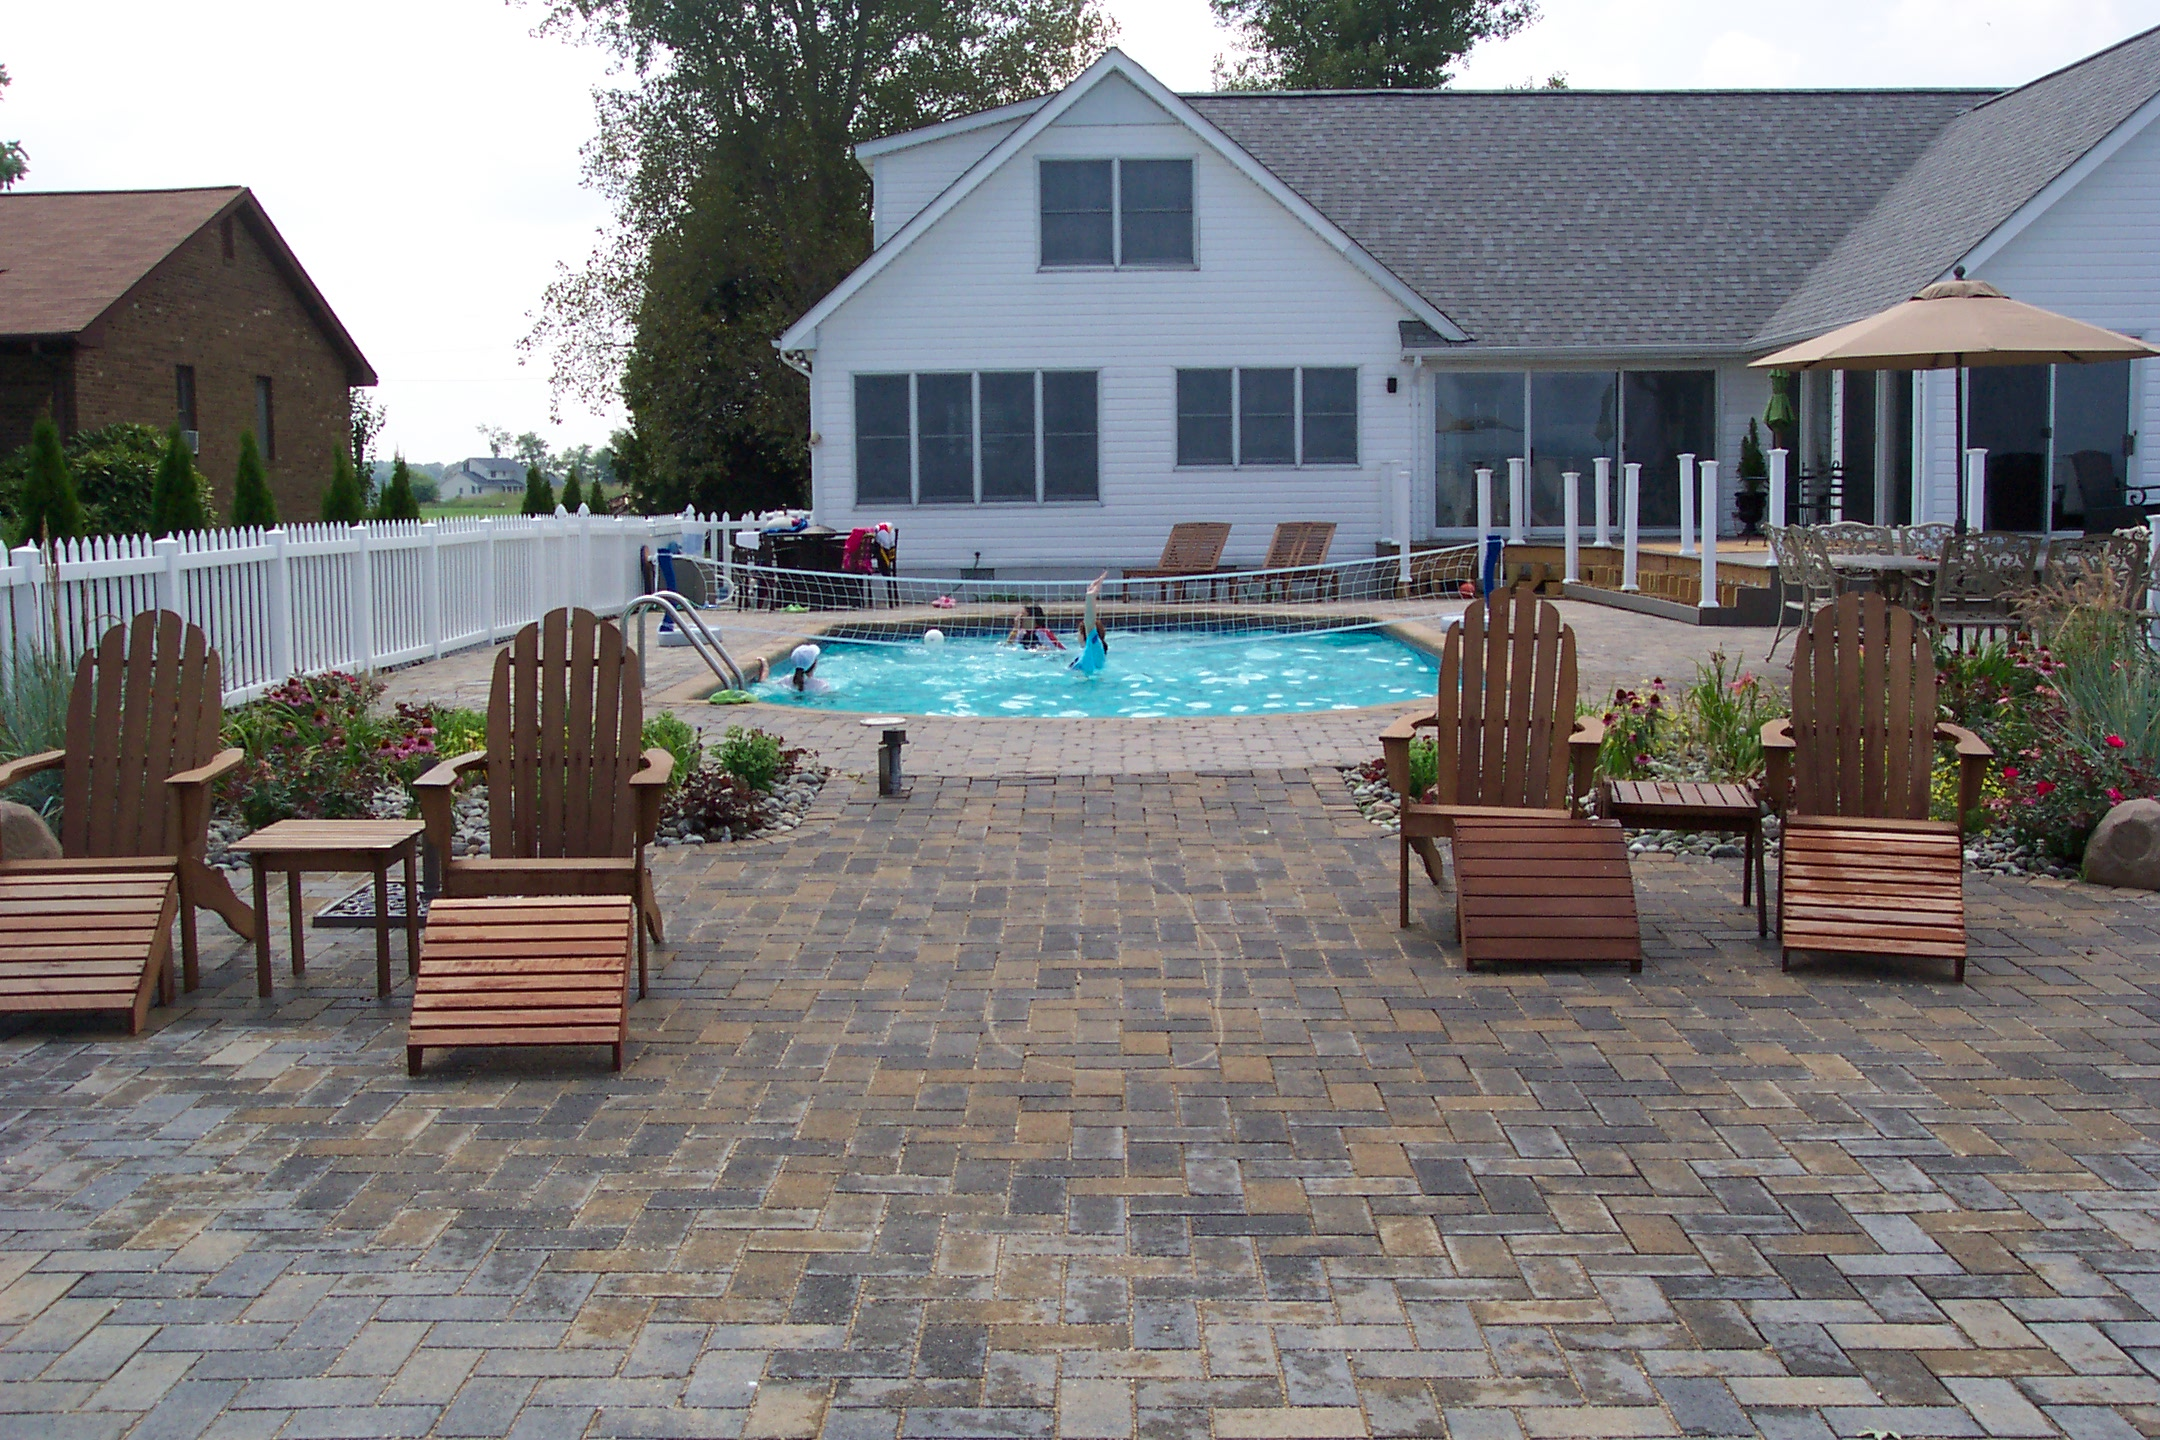 Permeable Pavers - Great, Eco-friendly Solution to Water ... on Patio Ideas Around Pool id=43530